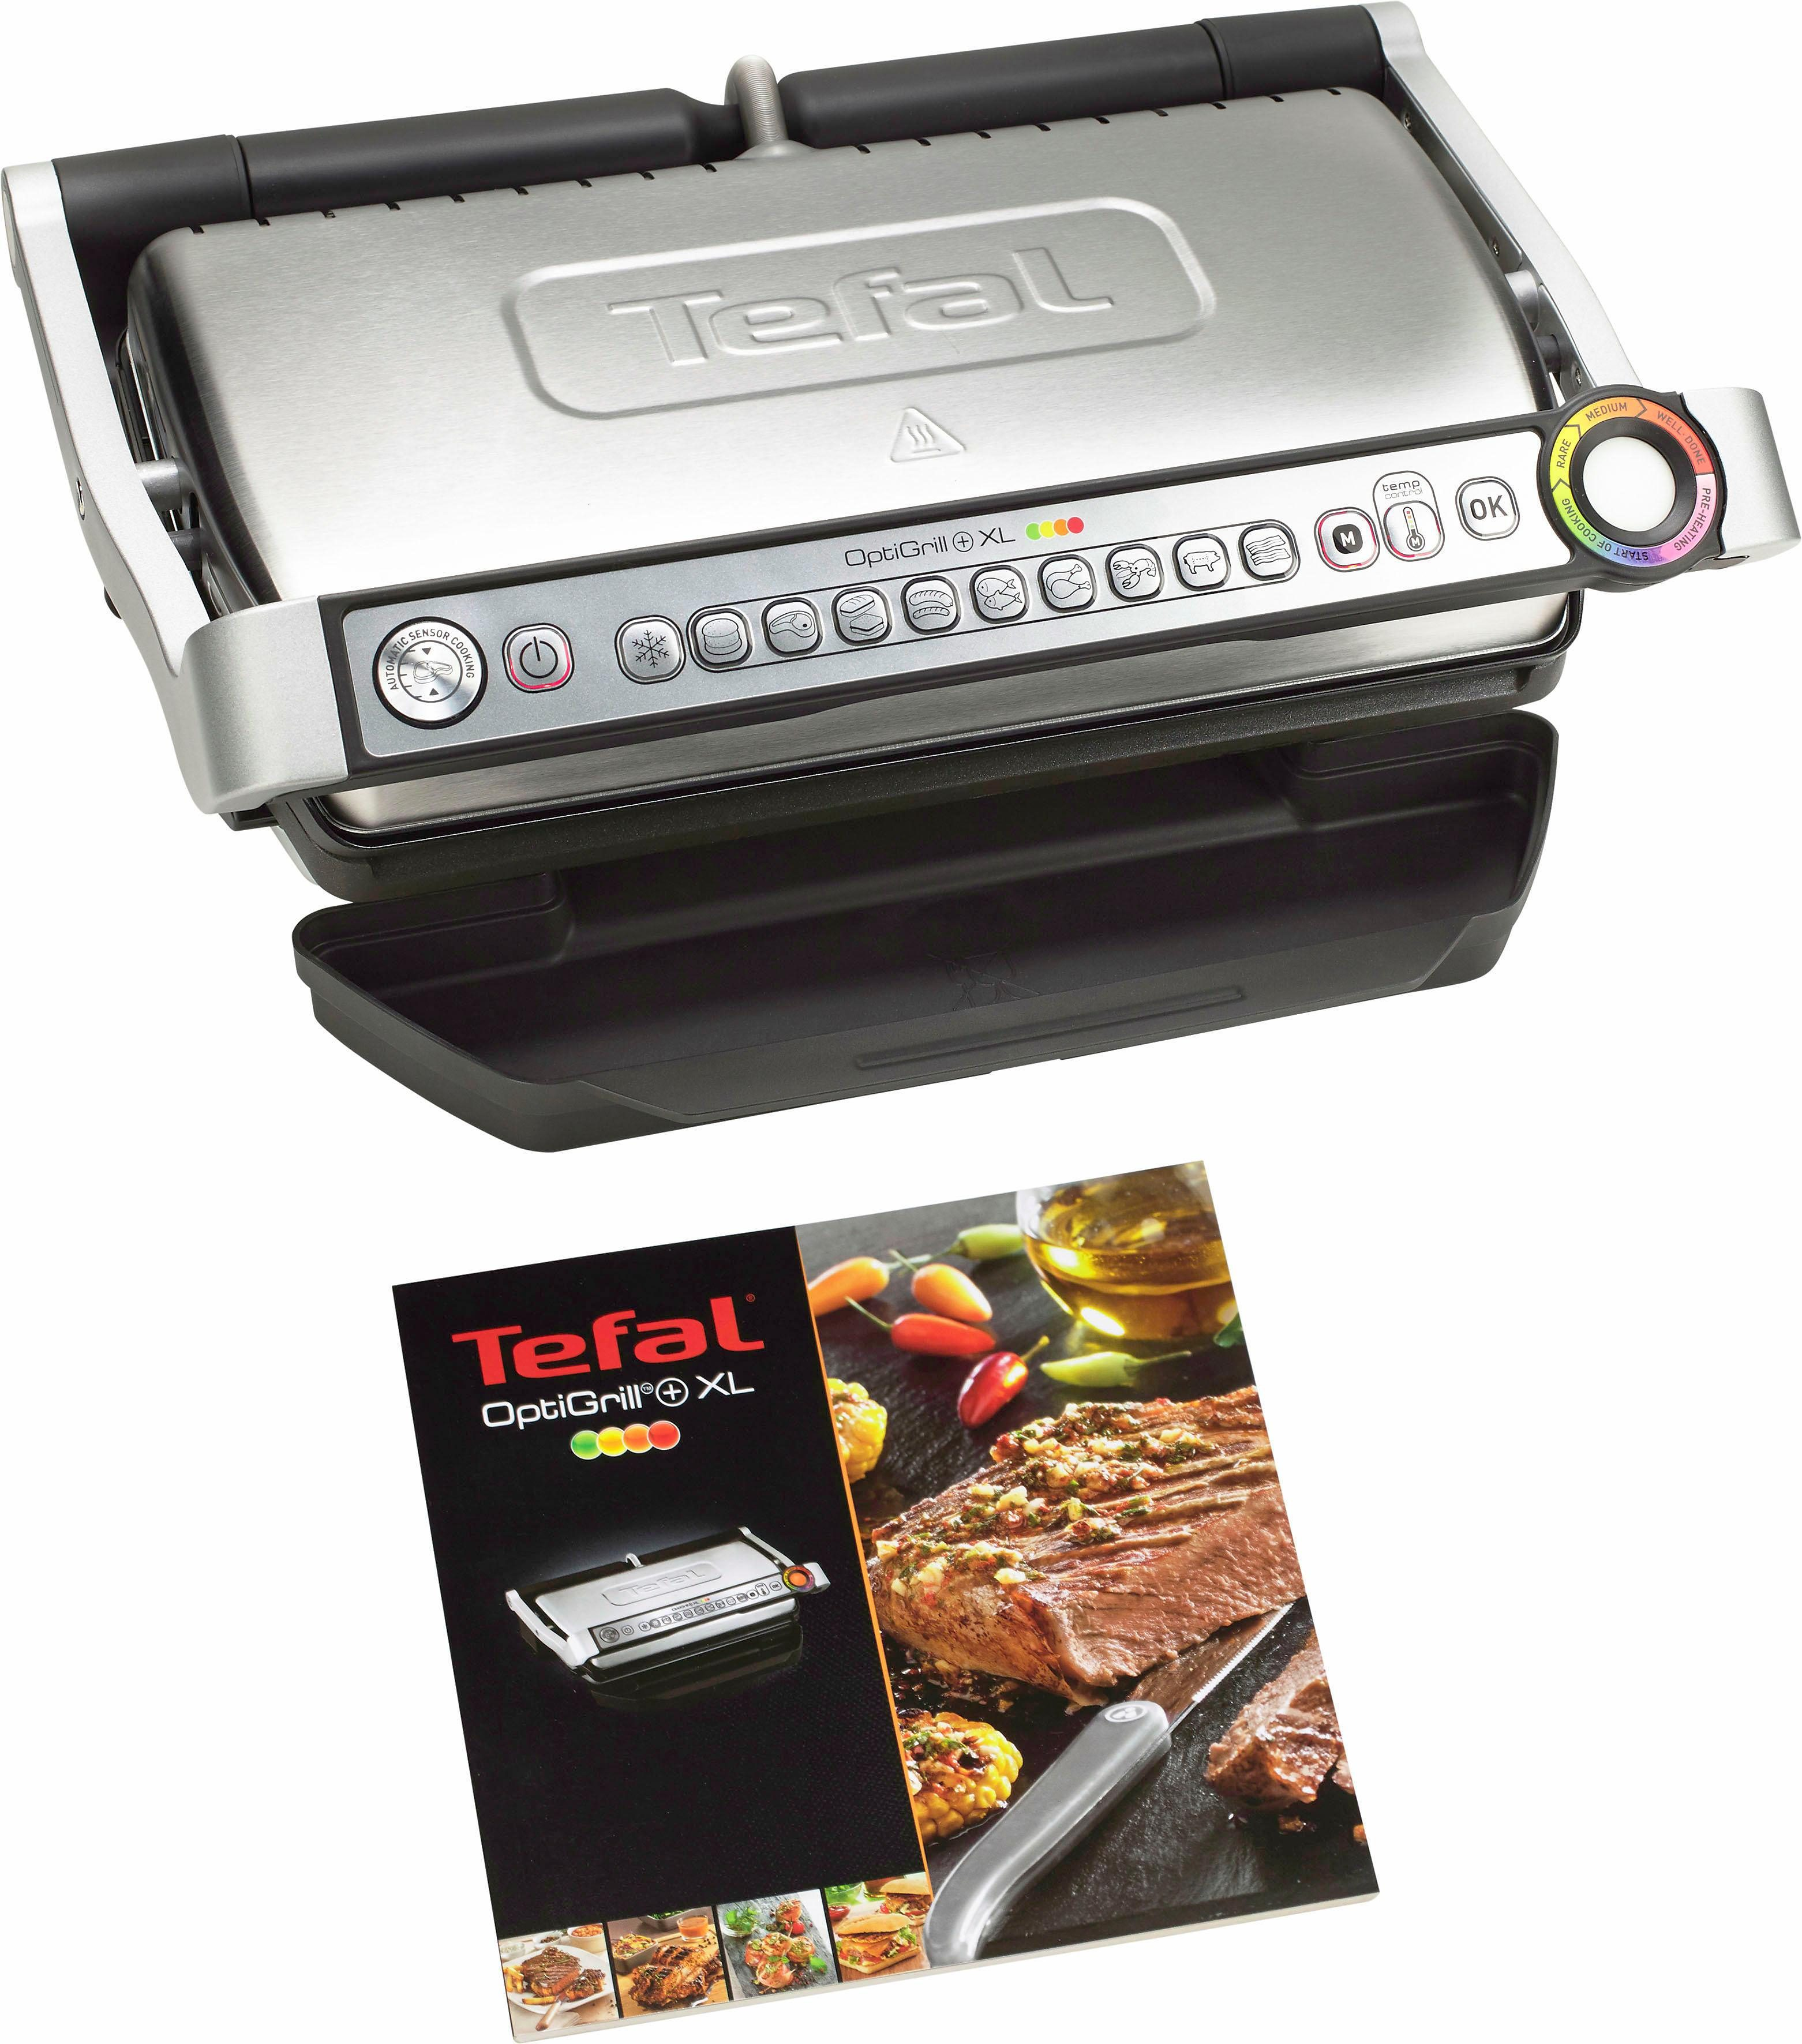 Tefal Tischgrill GC722D OptiGrill+ XL, 2000 W, 2000 Watt